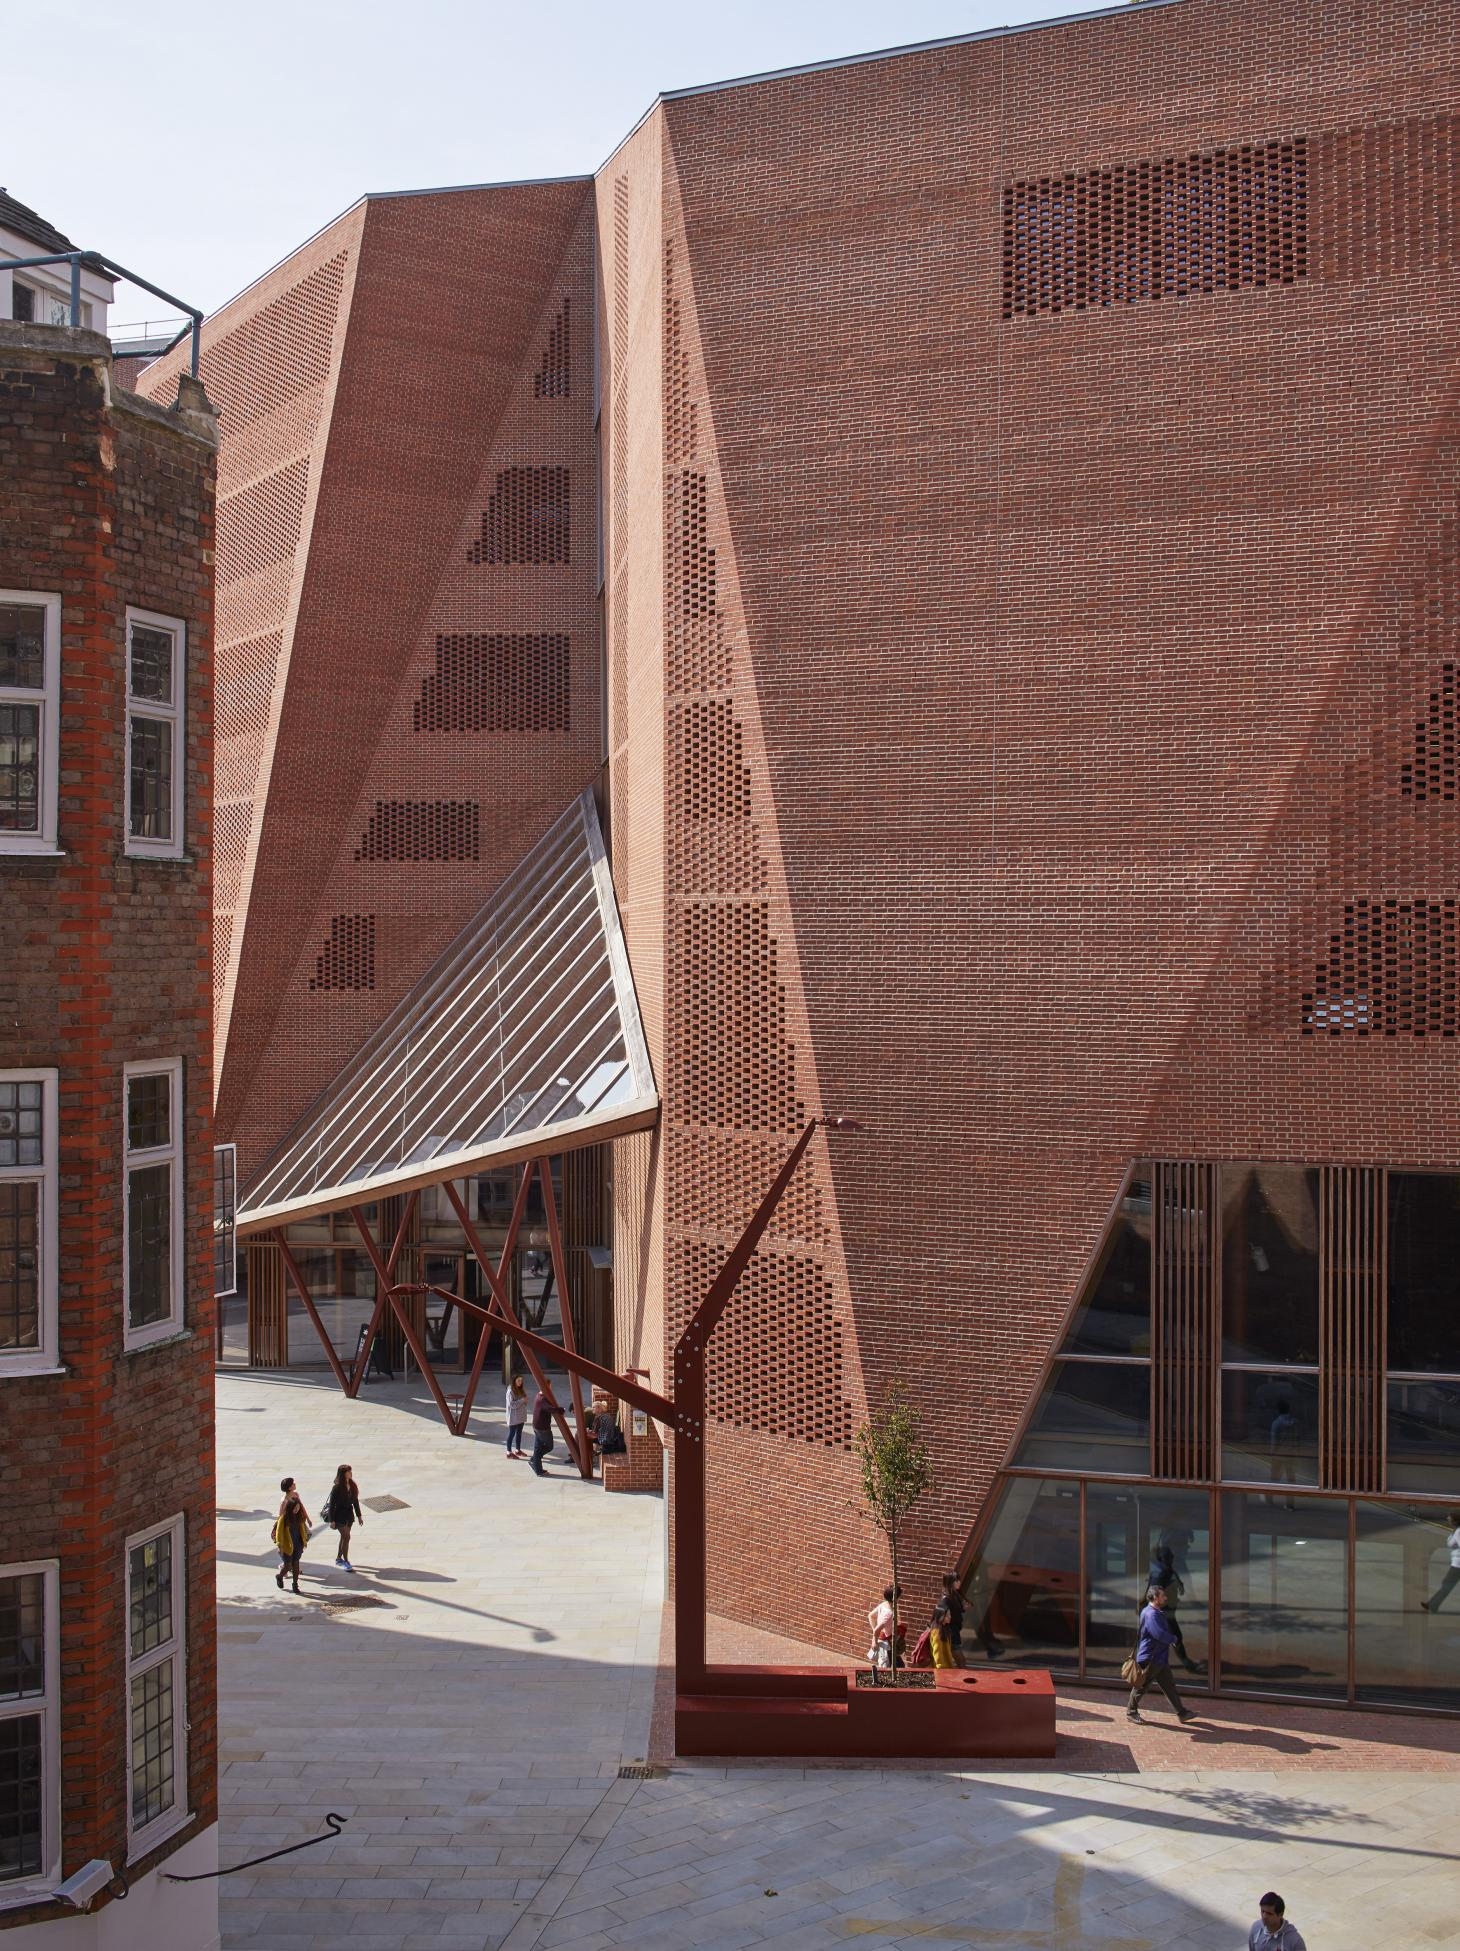 Saw Swee Hock Students' Centre, London School of Economics, by O'Donnell & Tuomey, 2014